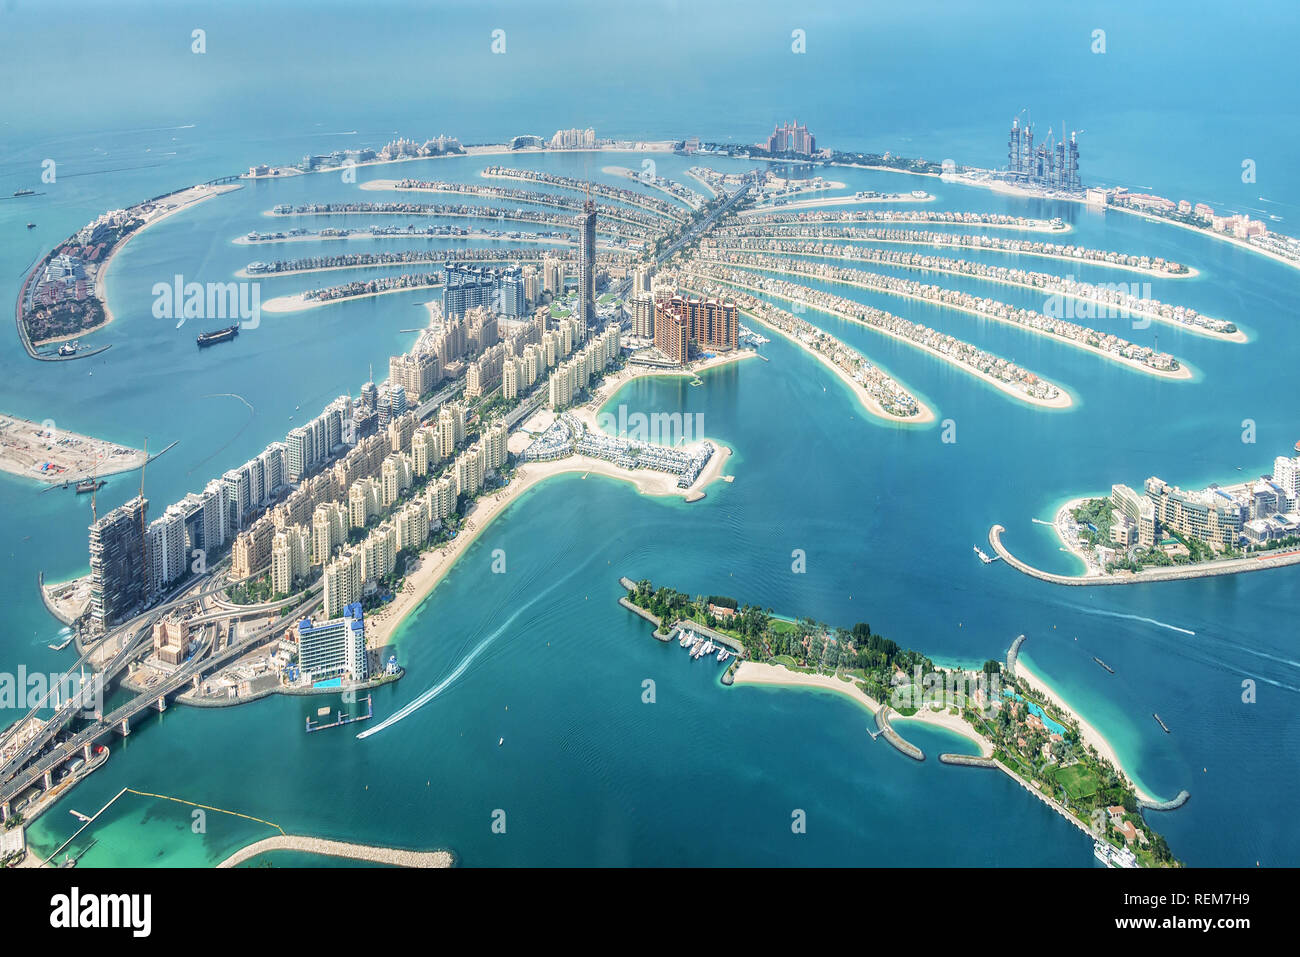 Aerial view of Dubai Palm Jumeirah island, United Arab Emirates Stock Photo